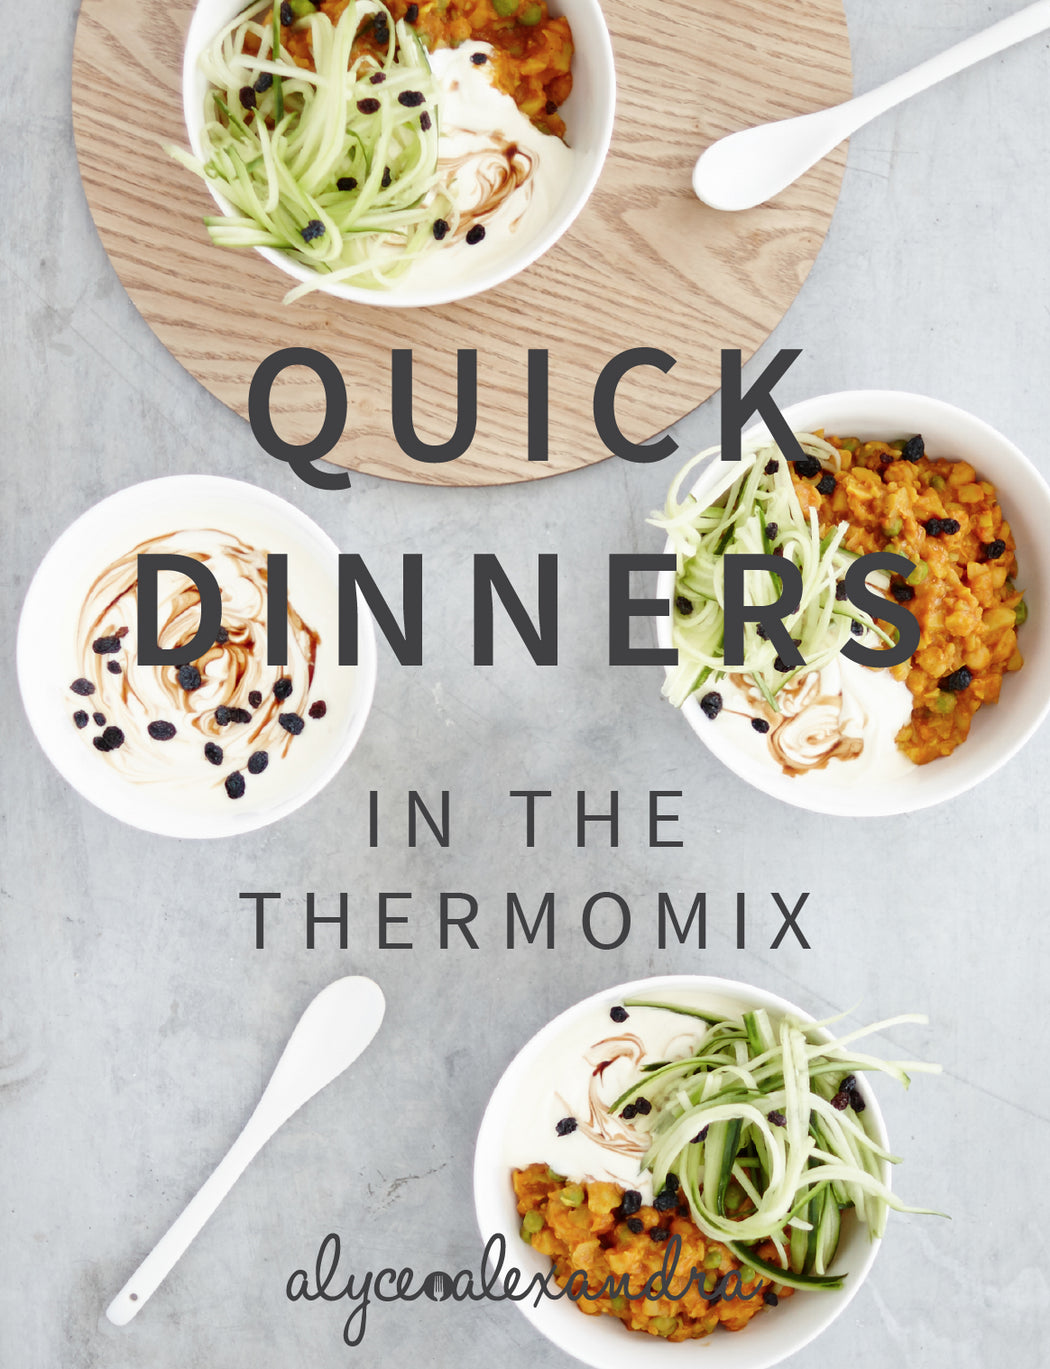 Quick dinners in the thermomix the tm shop quick dinners the tm shop thermomix recipes thermomix cookbooks thermomix accessories forumfinder Gallery